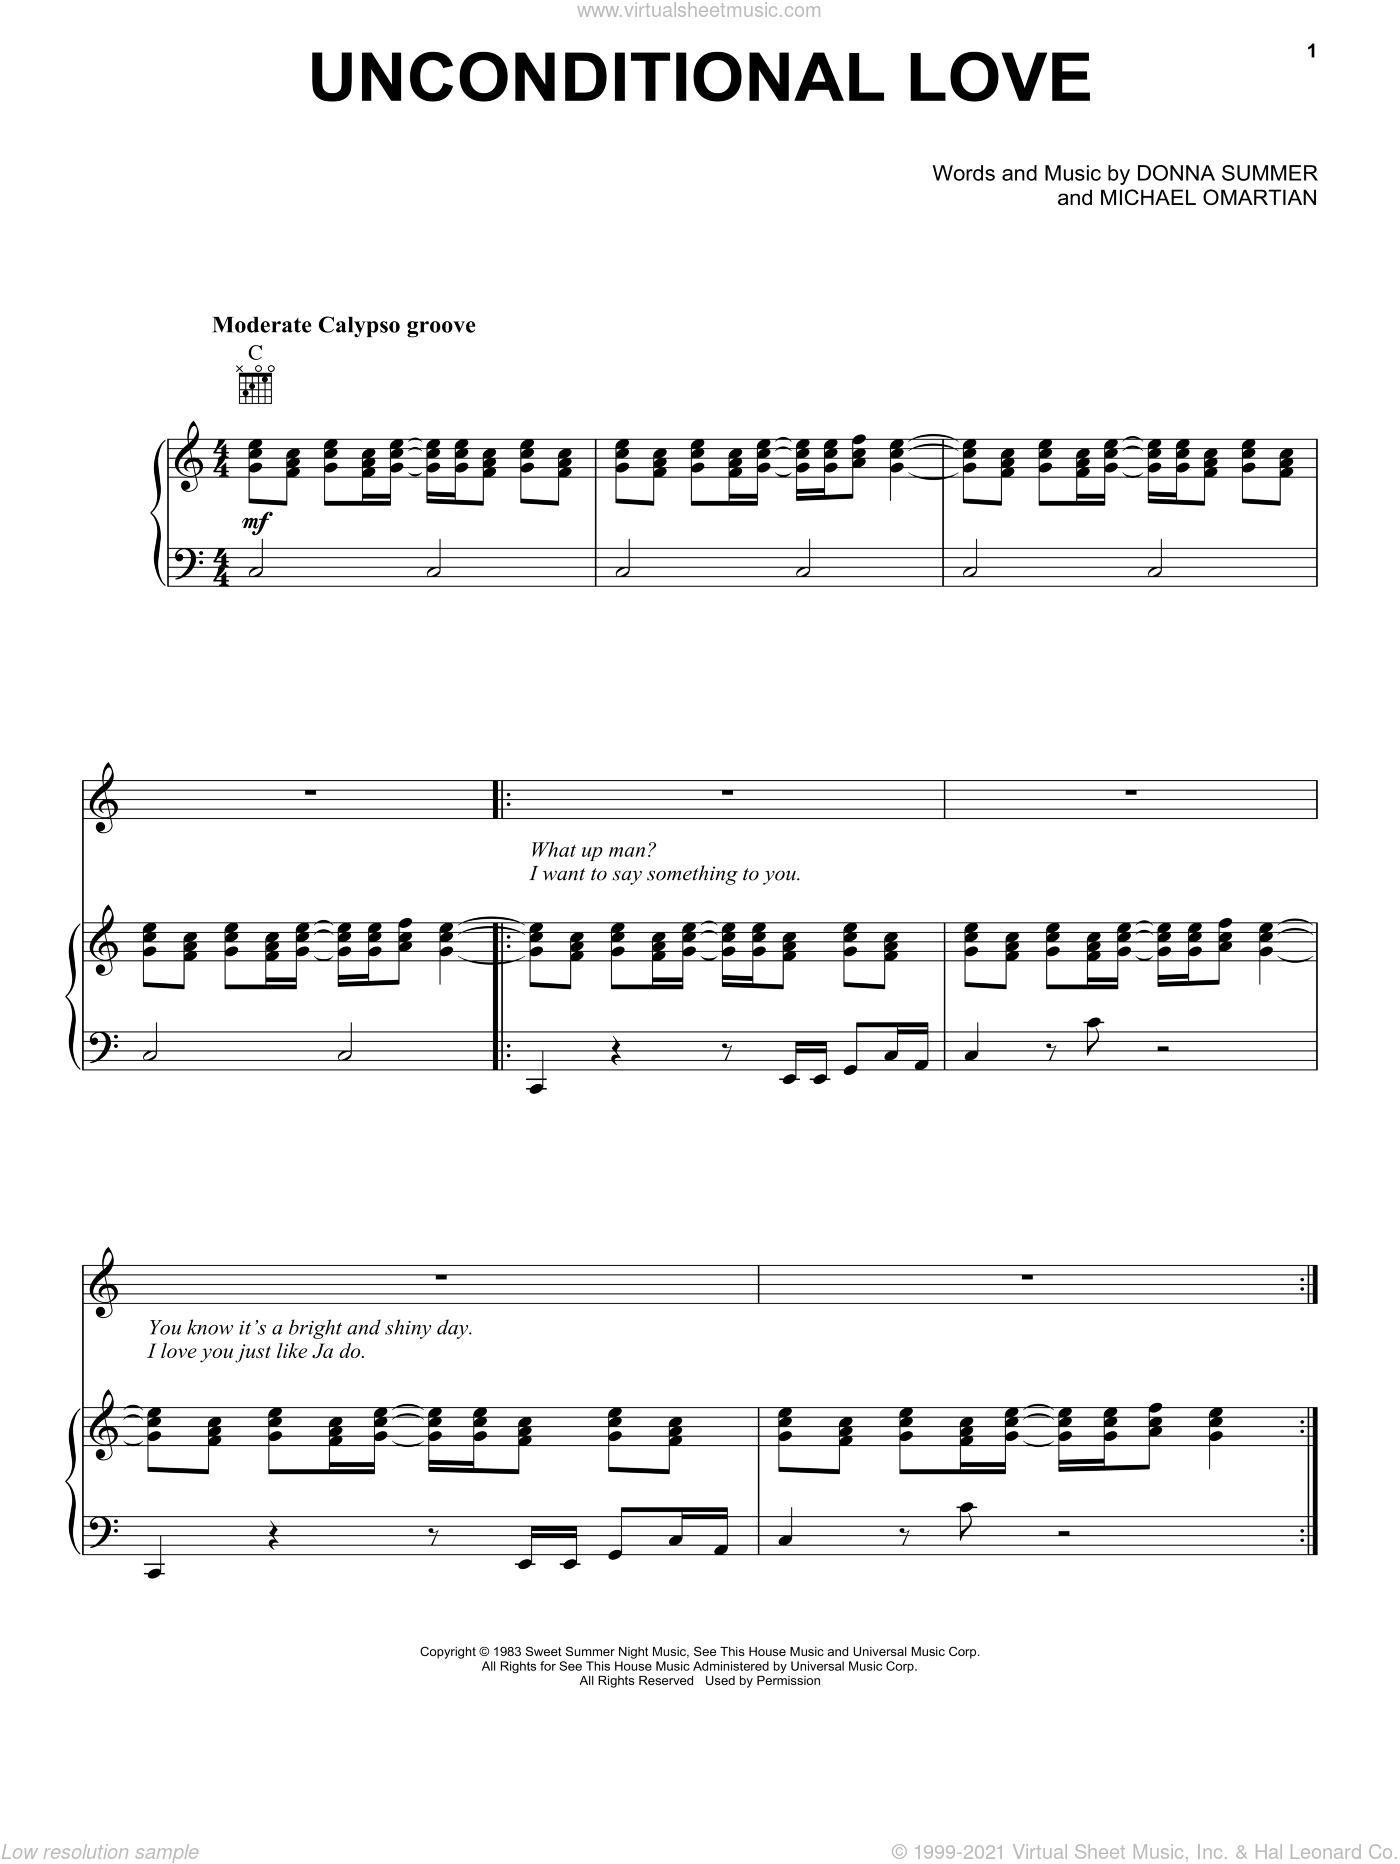 Unconditional Love sheet music for voice, piano or guitar by Donna Summer and Michael Omartian, intermediate skill level